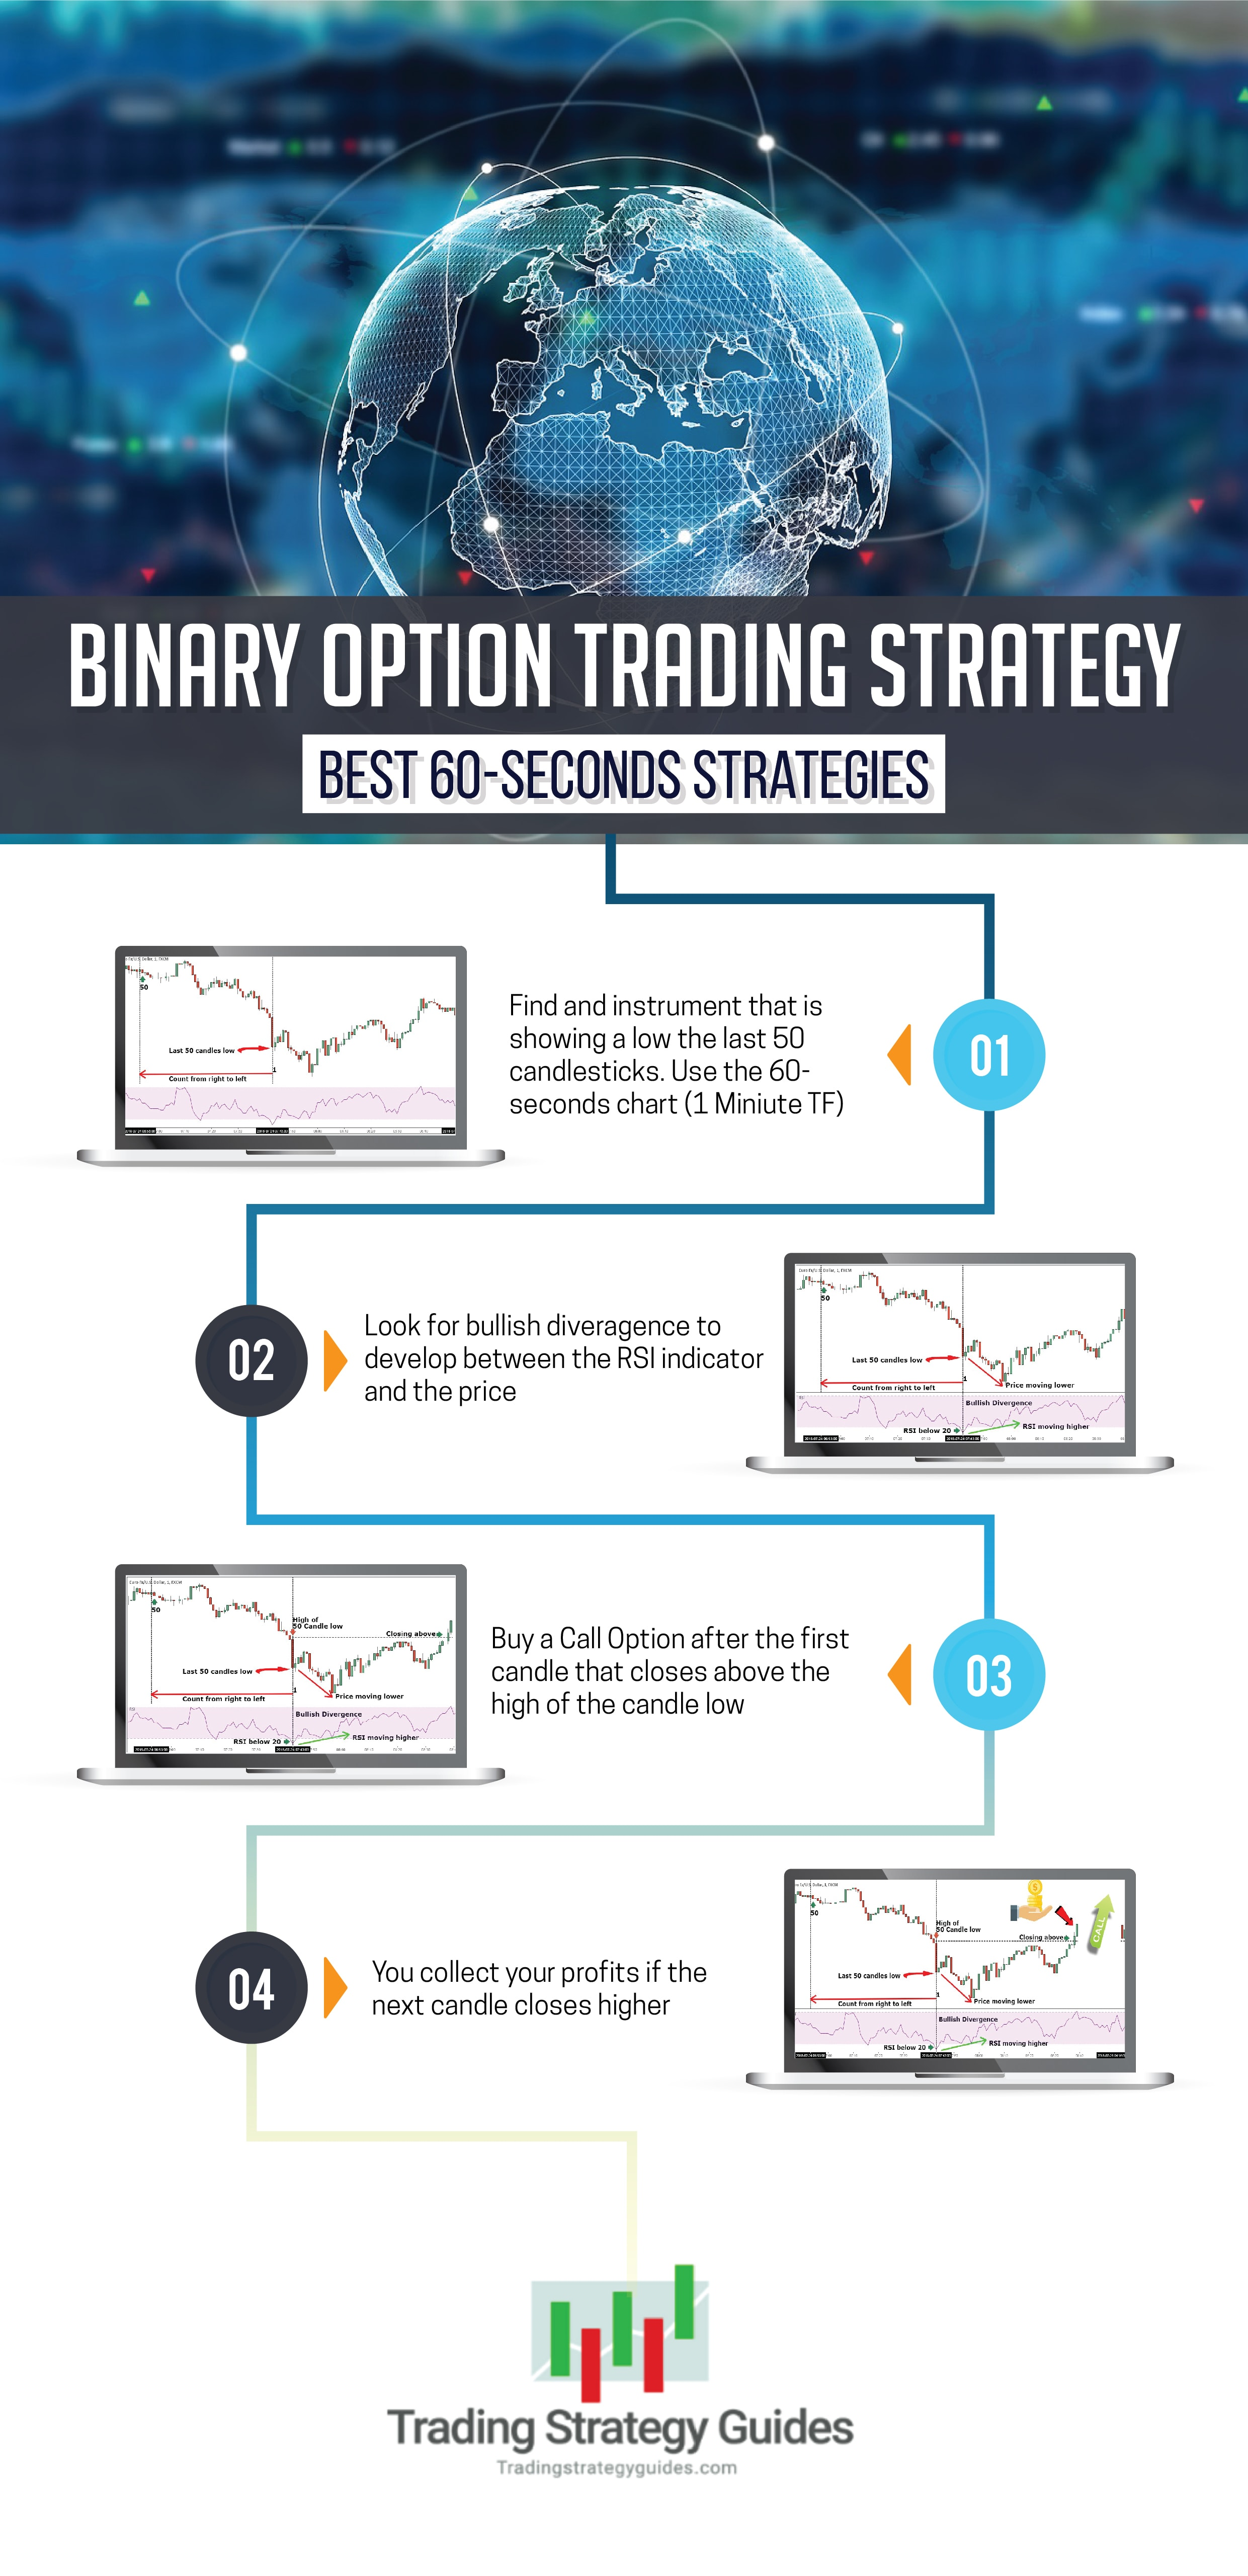 Best strategies for binary options